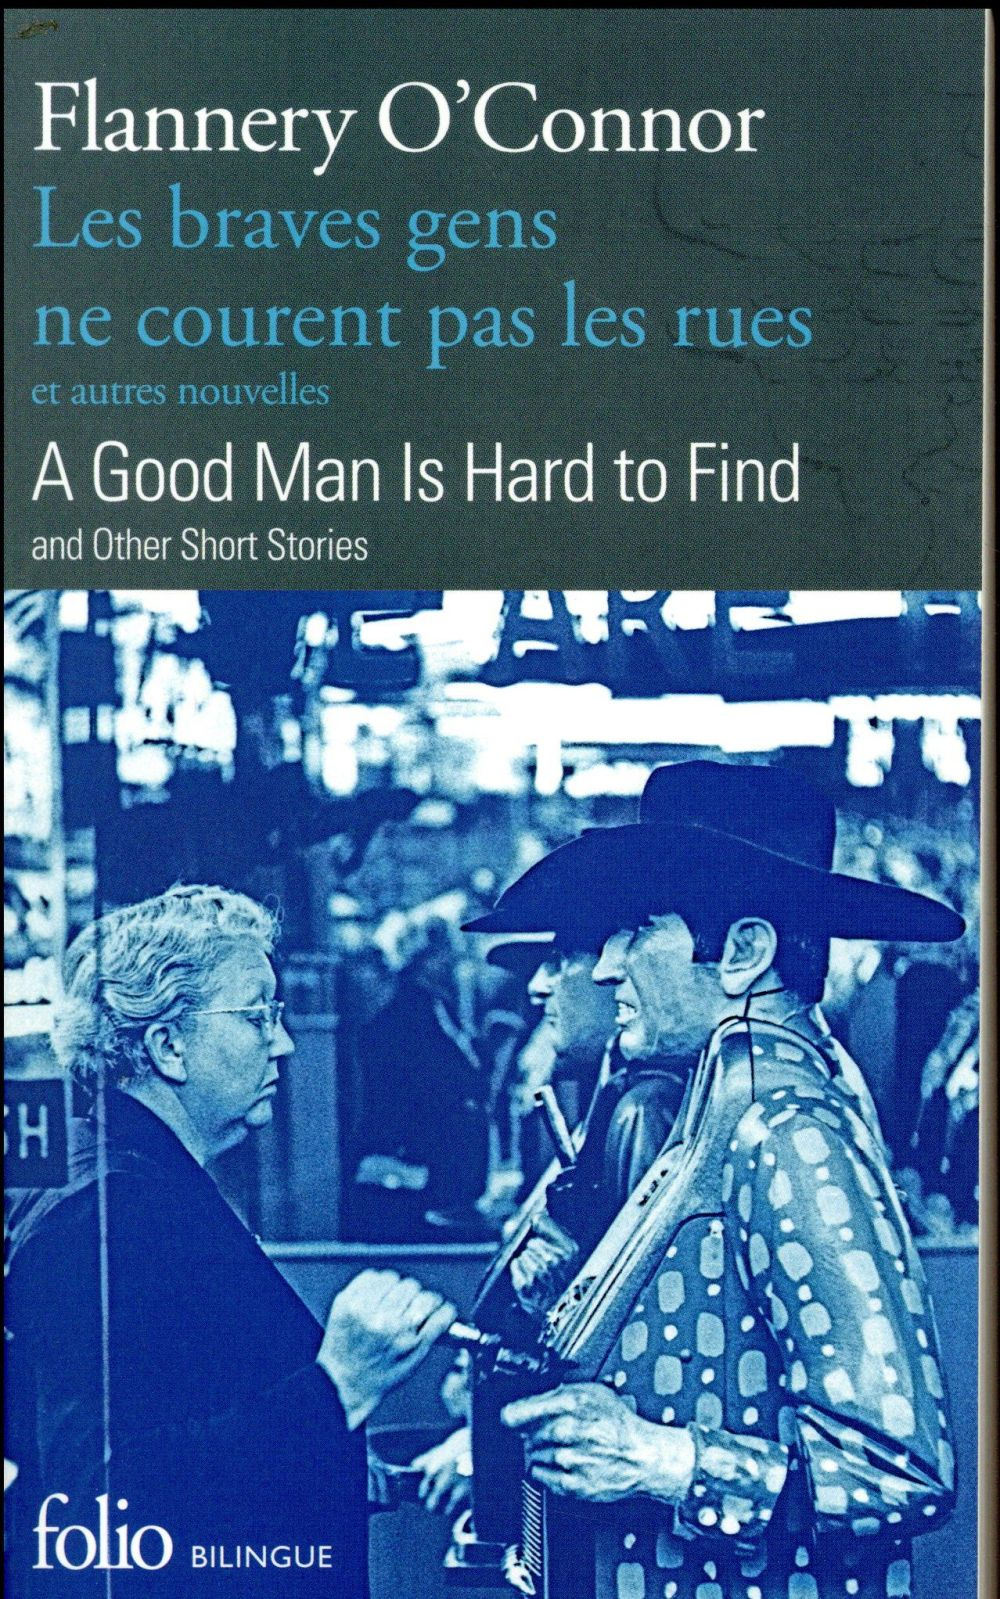 Les braves gens ne courent pas les rues et autres nouvelles ; a good man is hard to find and other short stories